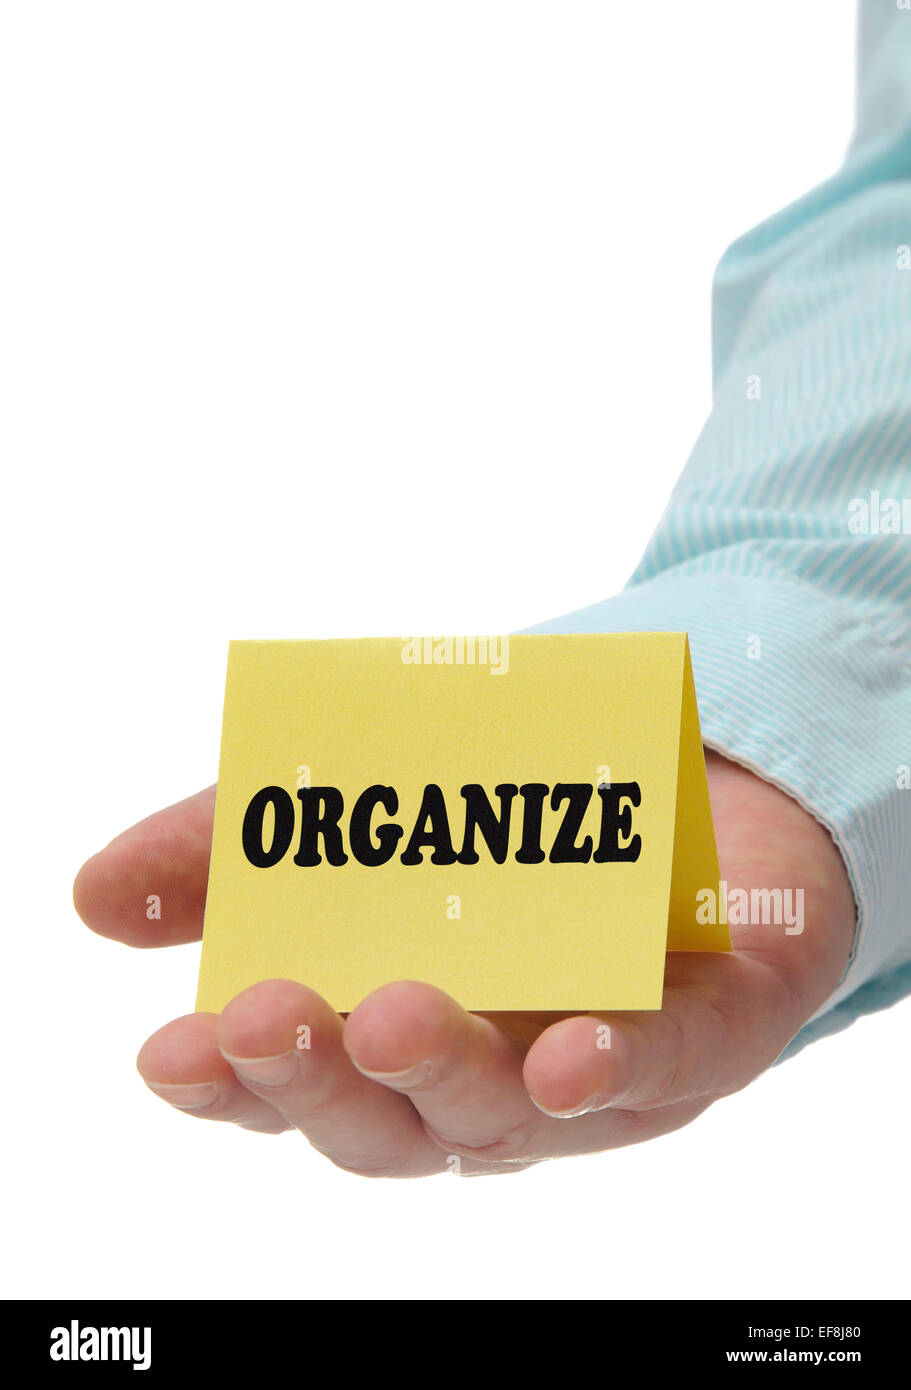 Business man holding organize sign on hand - Stock Image